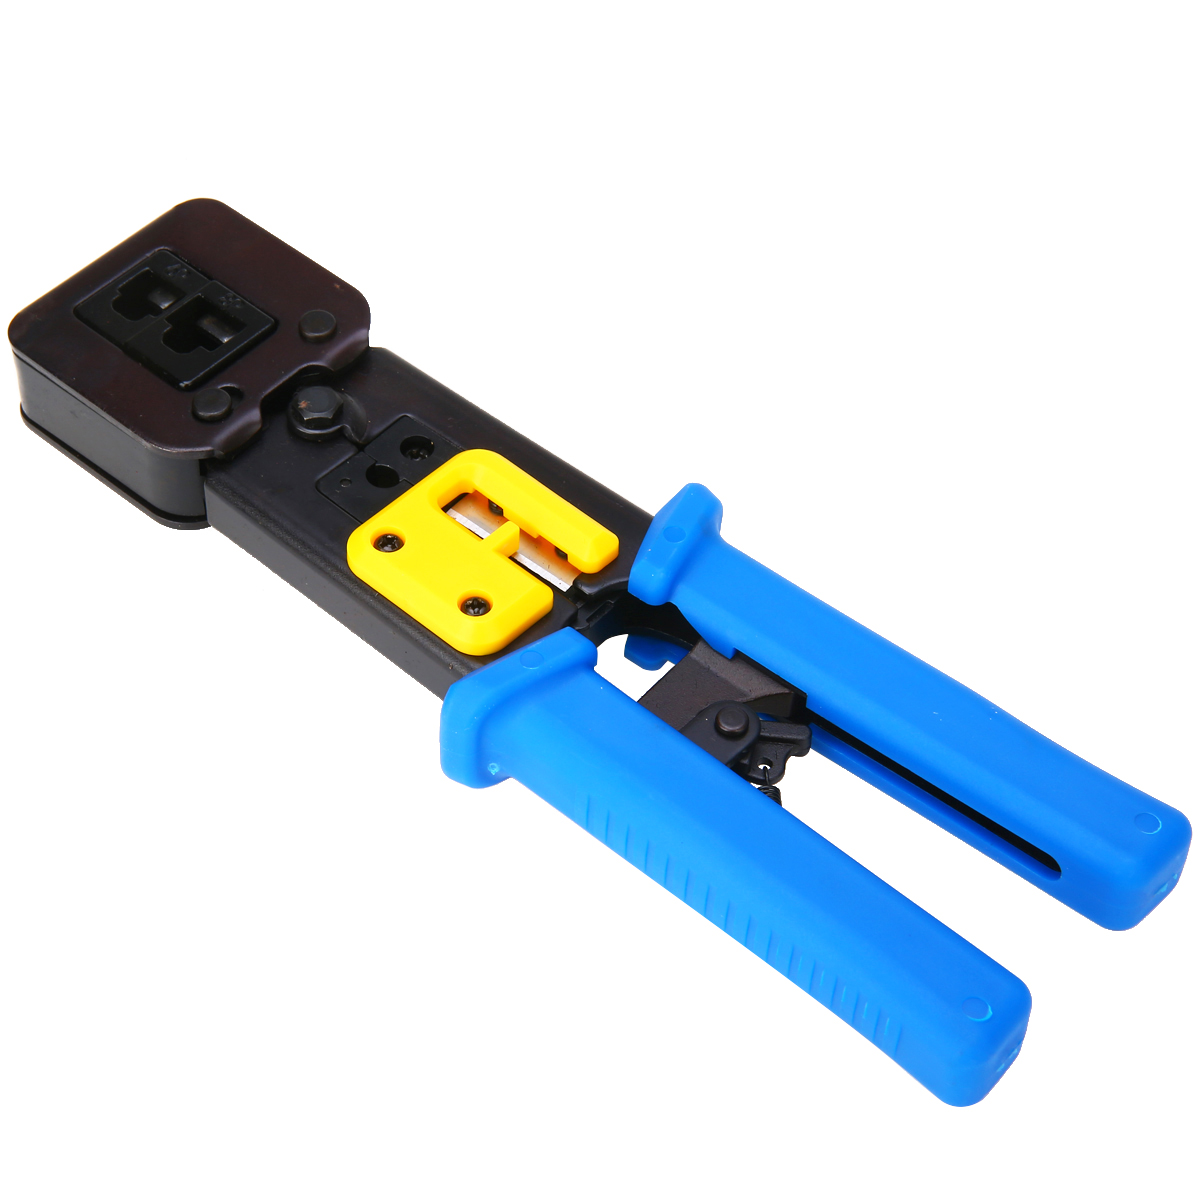 Mayitr Network Clamp Crimper Tools for Cat5e Cat6 Cables RJ45 RJ11 Connector Plugs Crimping Tool Net Cutter Crystal Head FriezeMayitr Network Clamp Crimper Tools for Cat5e Cat6 Cables RJ45 RJ11 Connector Plugs Crimping Tool Net Cutter Crystal Head Frieze